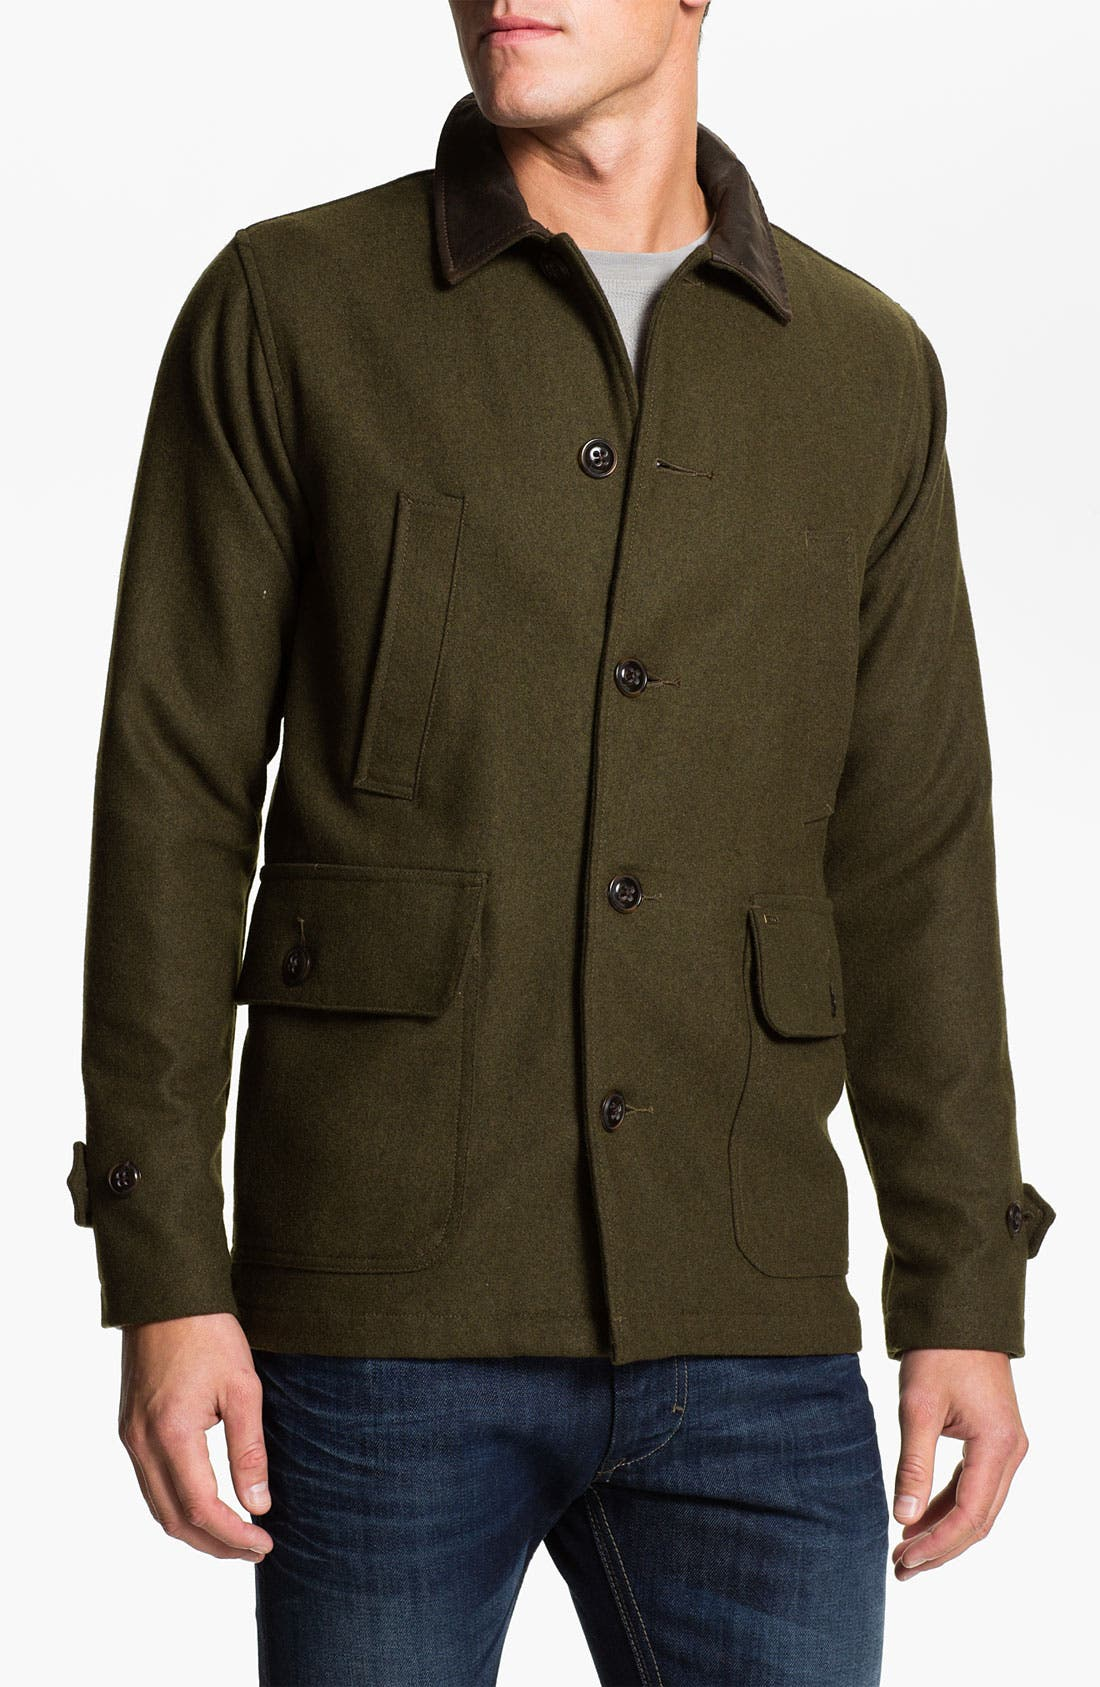 Main Image - Obey 'Berlin' Wool Blend Jacket